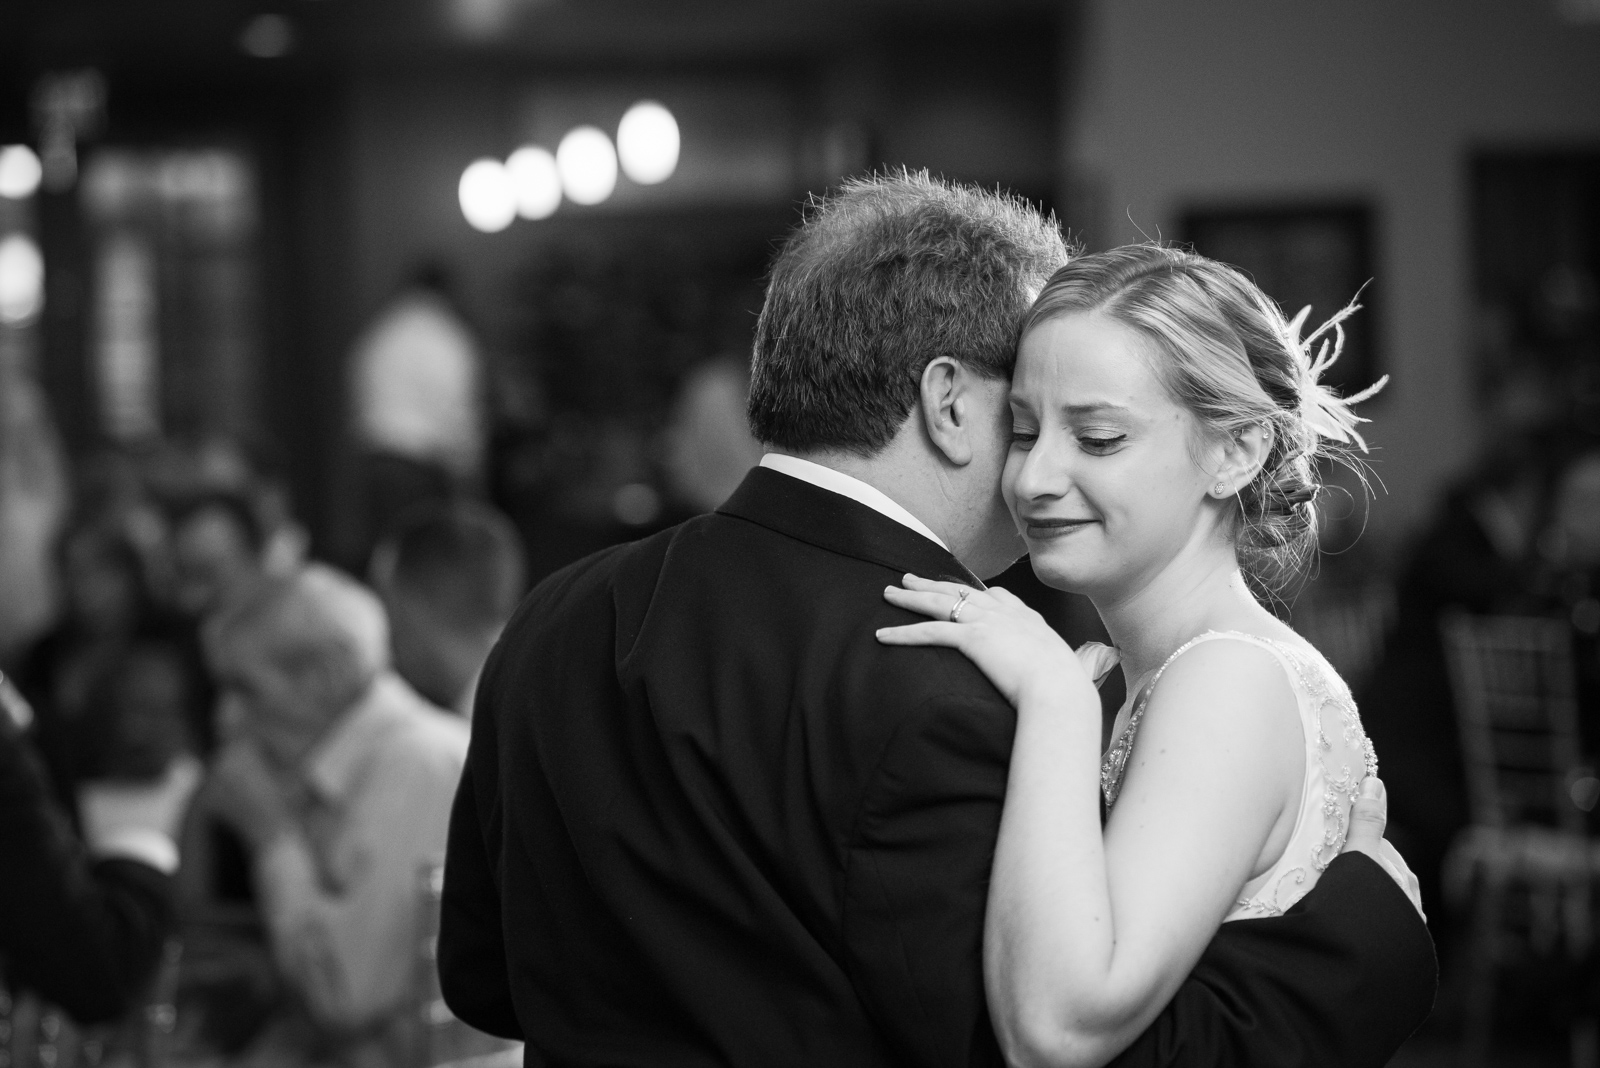 Scranton-clarks-summit-wedding-glen-oaks-contry-club-wedding-photographer-steven-serge-81.jpg